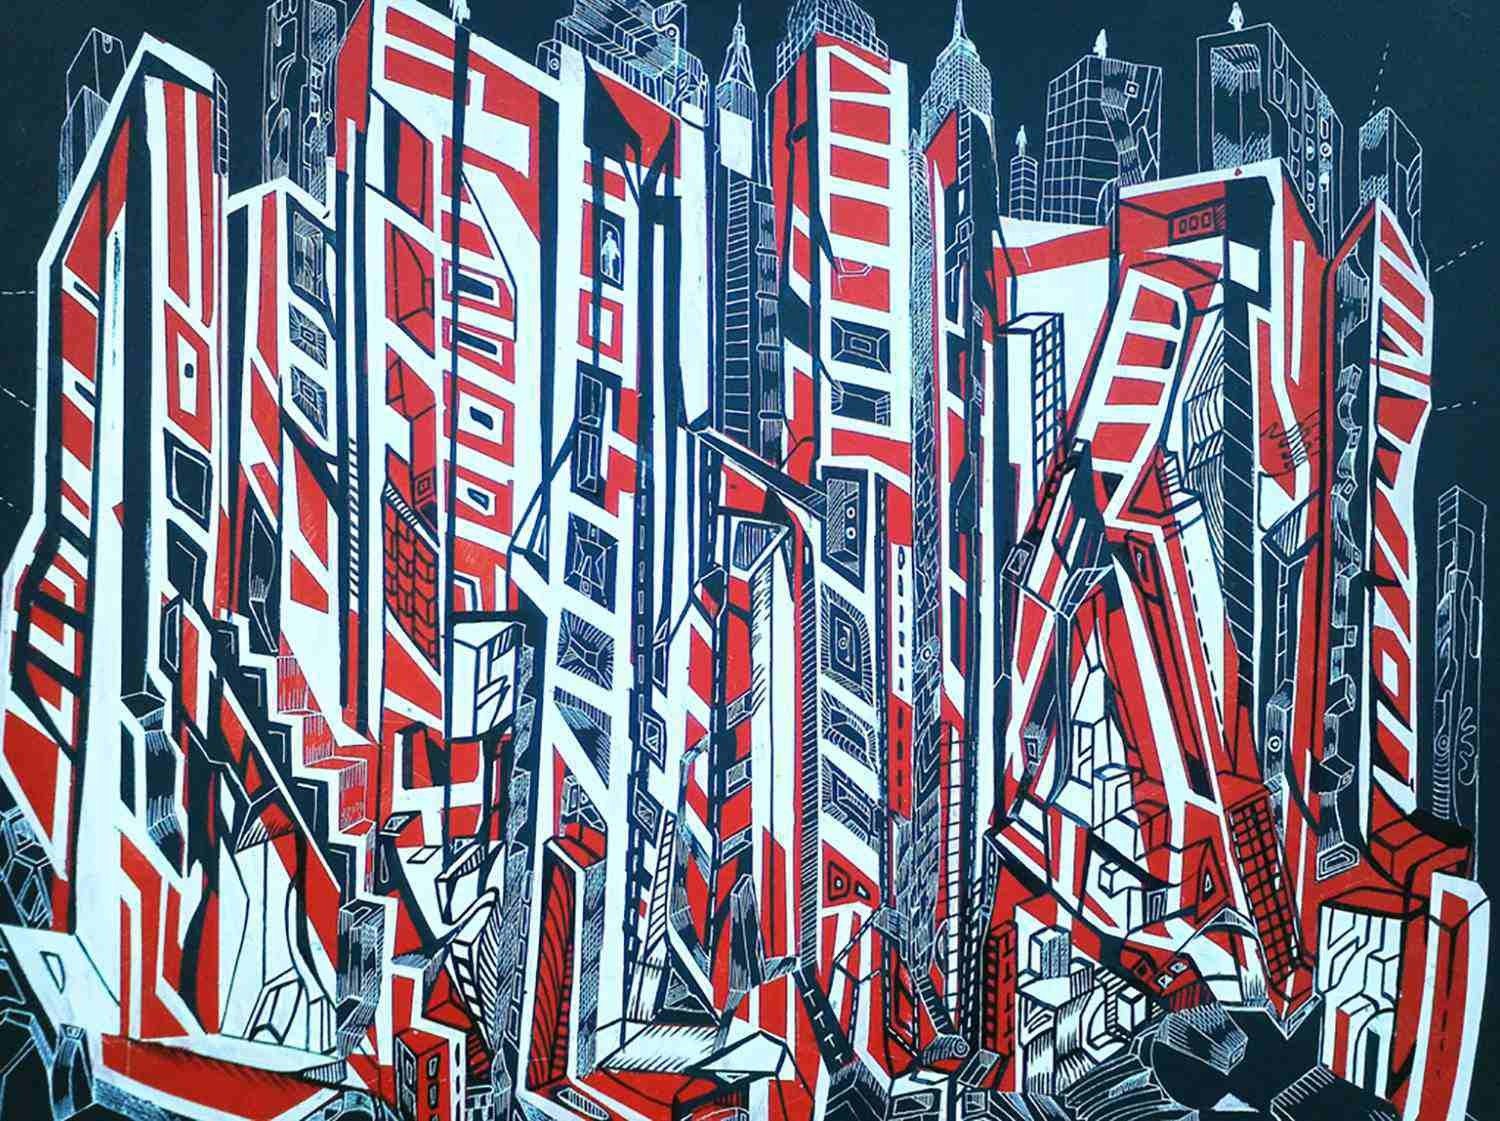 Mr. City is a painting of city skyline by Marko Gavrilovic